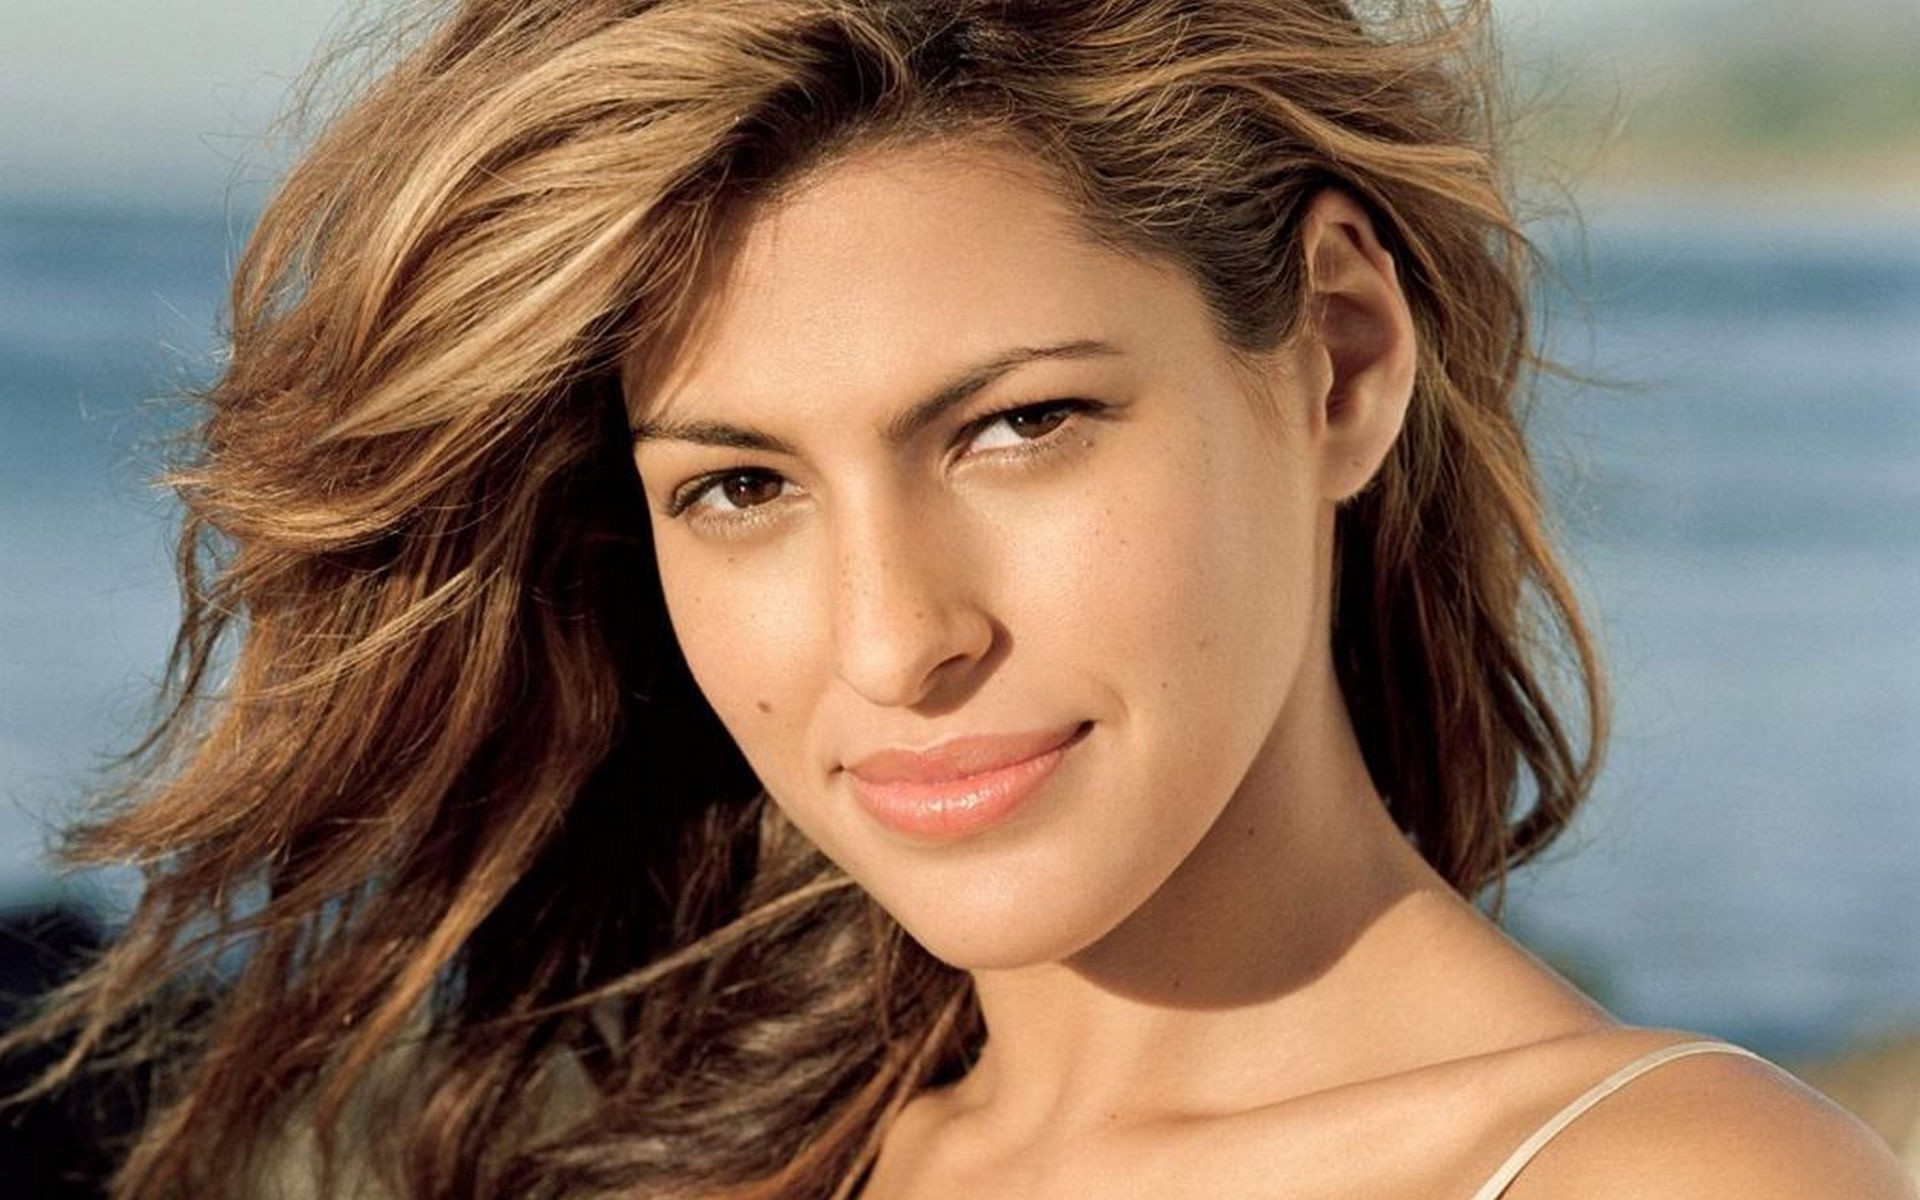 21 Gorgeous Hd Eva Mendes Wallpapers